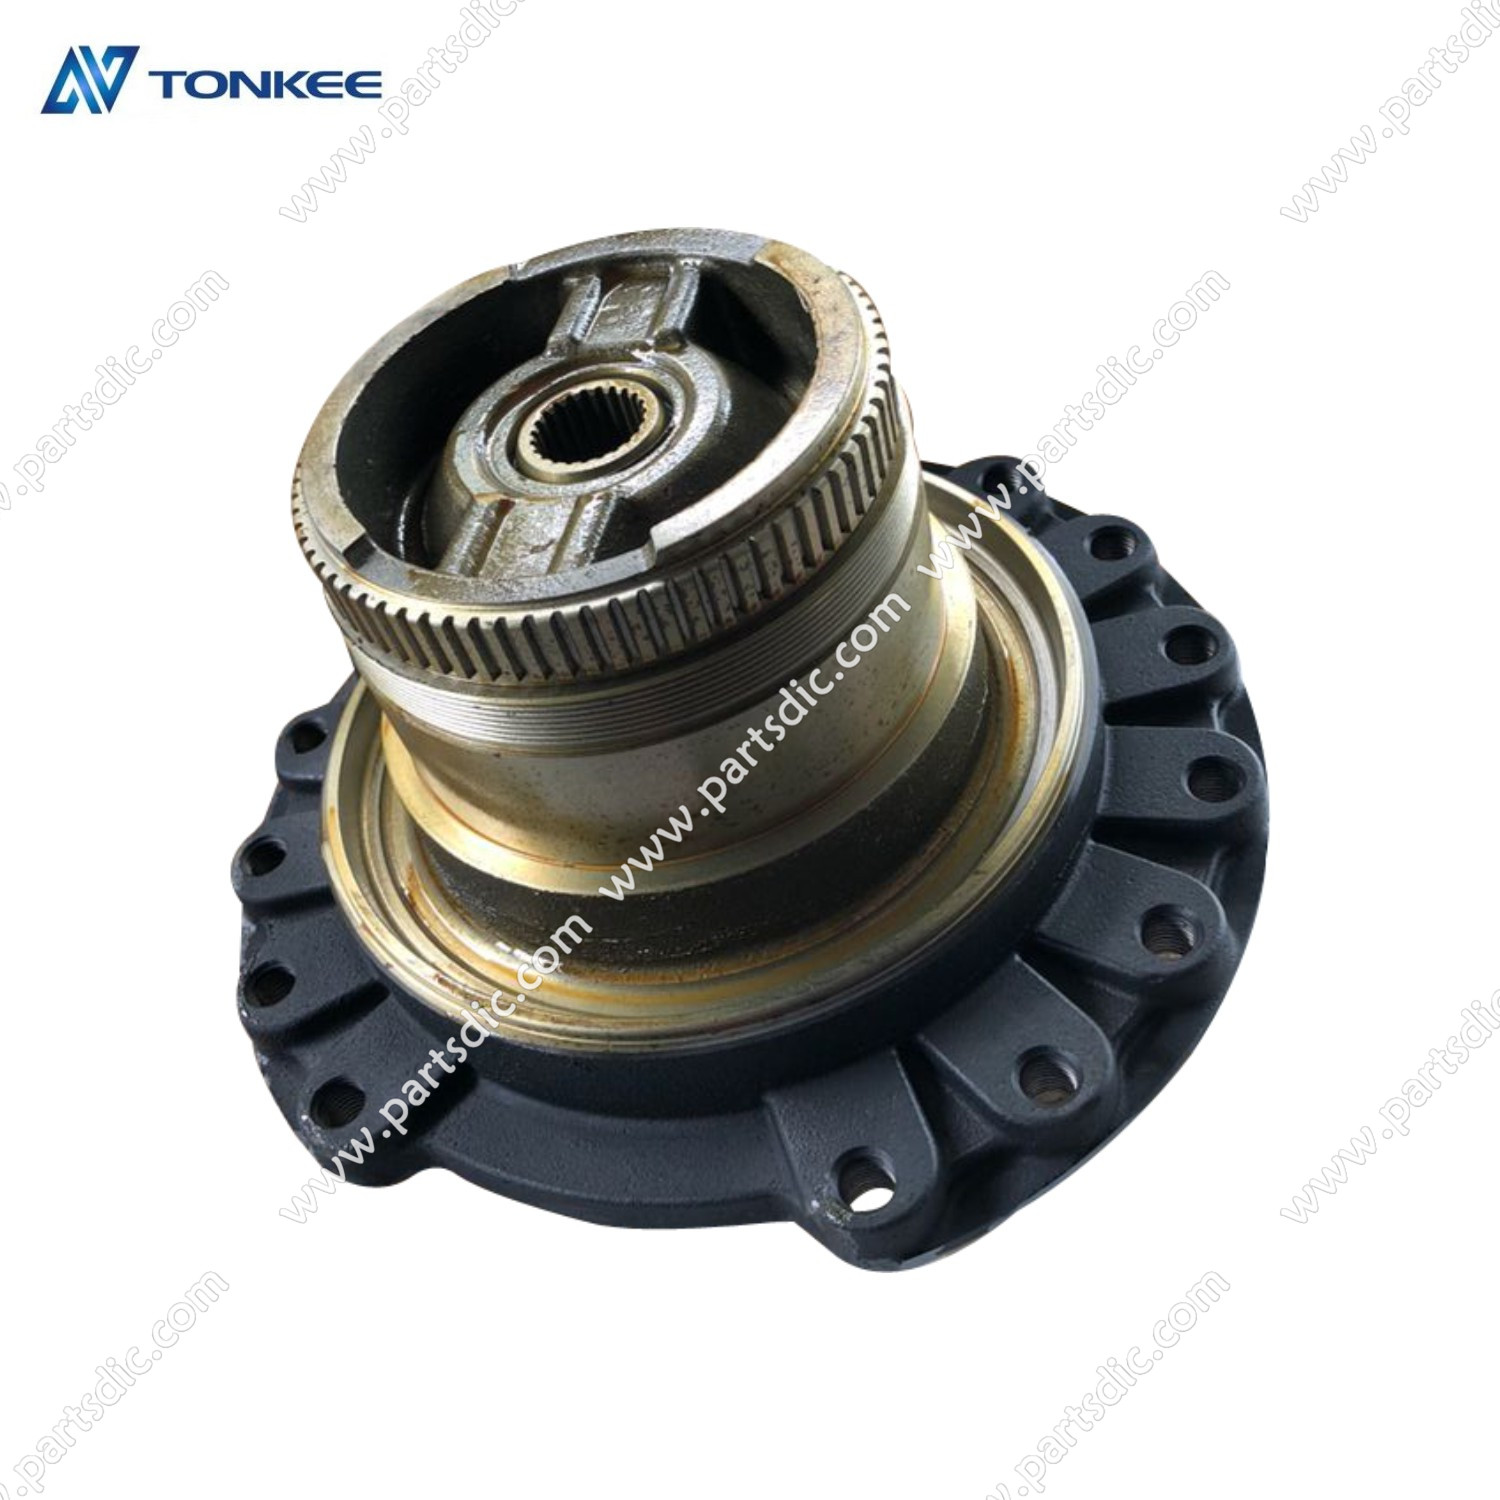 92501889233692 9269199 9261222 9239841 travel deviceZX200LC-3 ZX210-3 ZX230-3 ZX240-3 ZX200-3Fexcavator travel motor Assy final drive group suitable forHITACHI